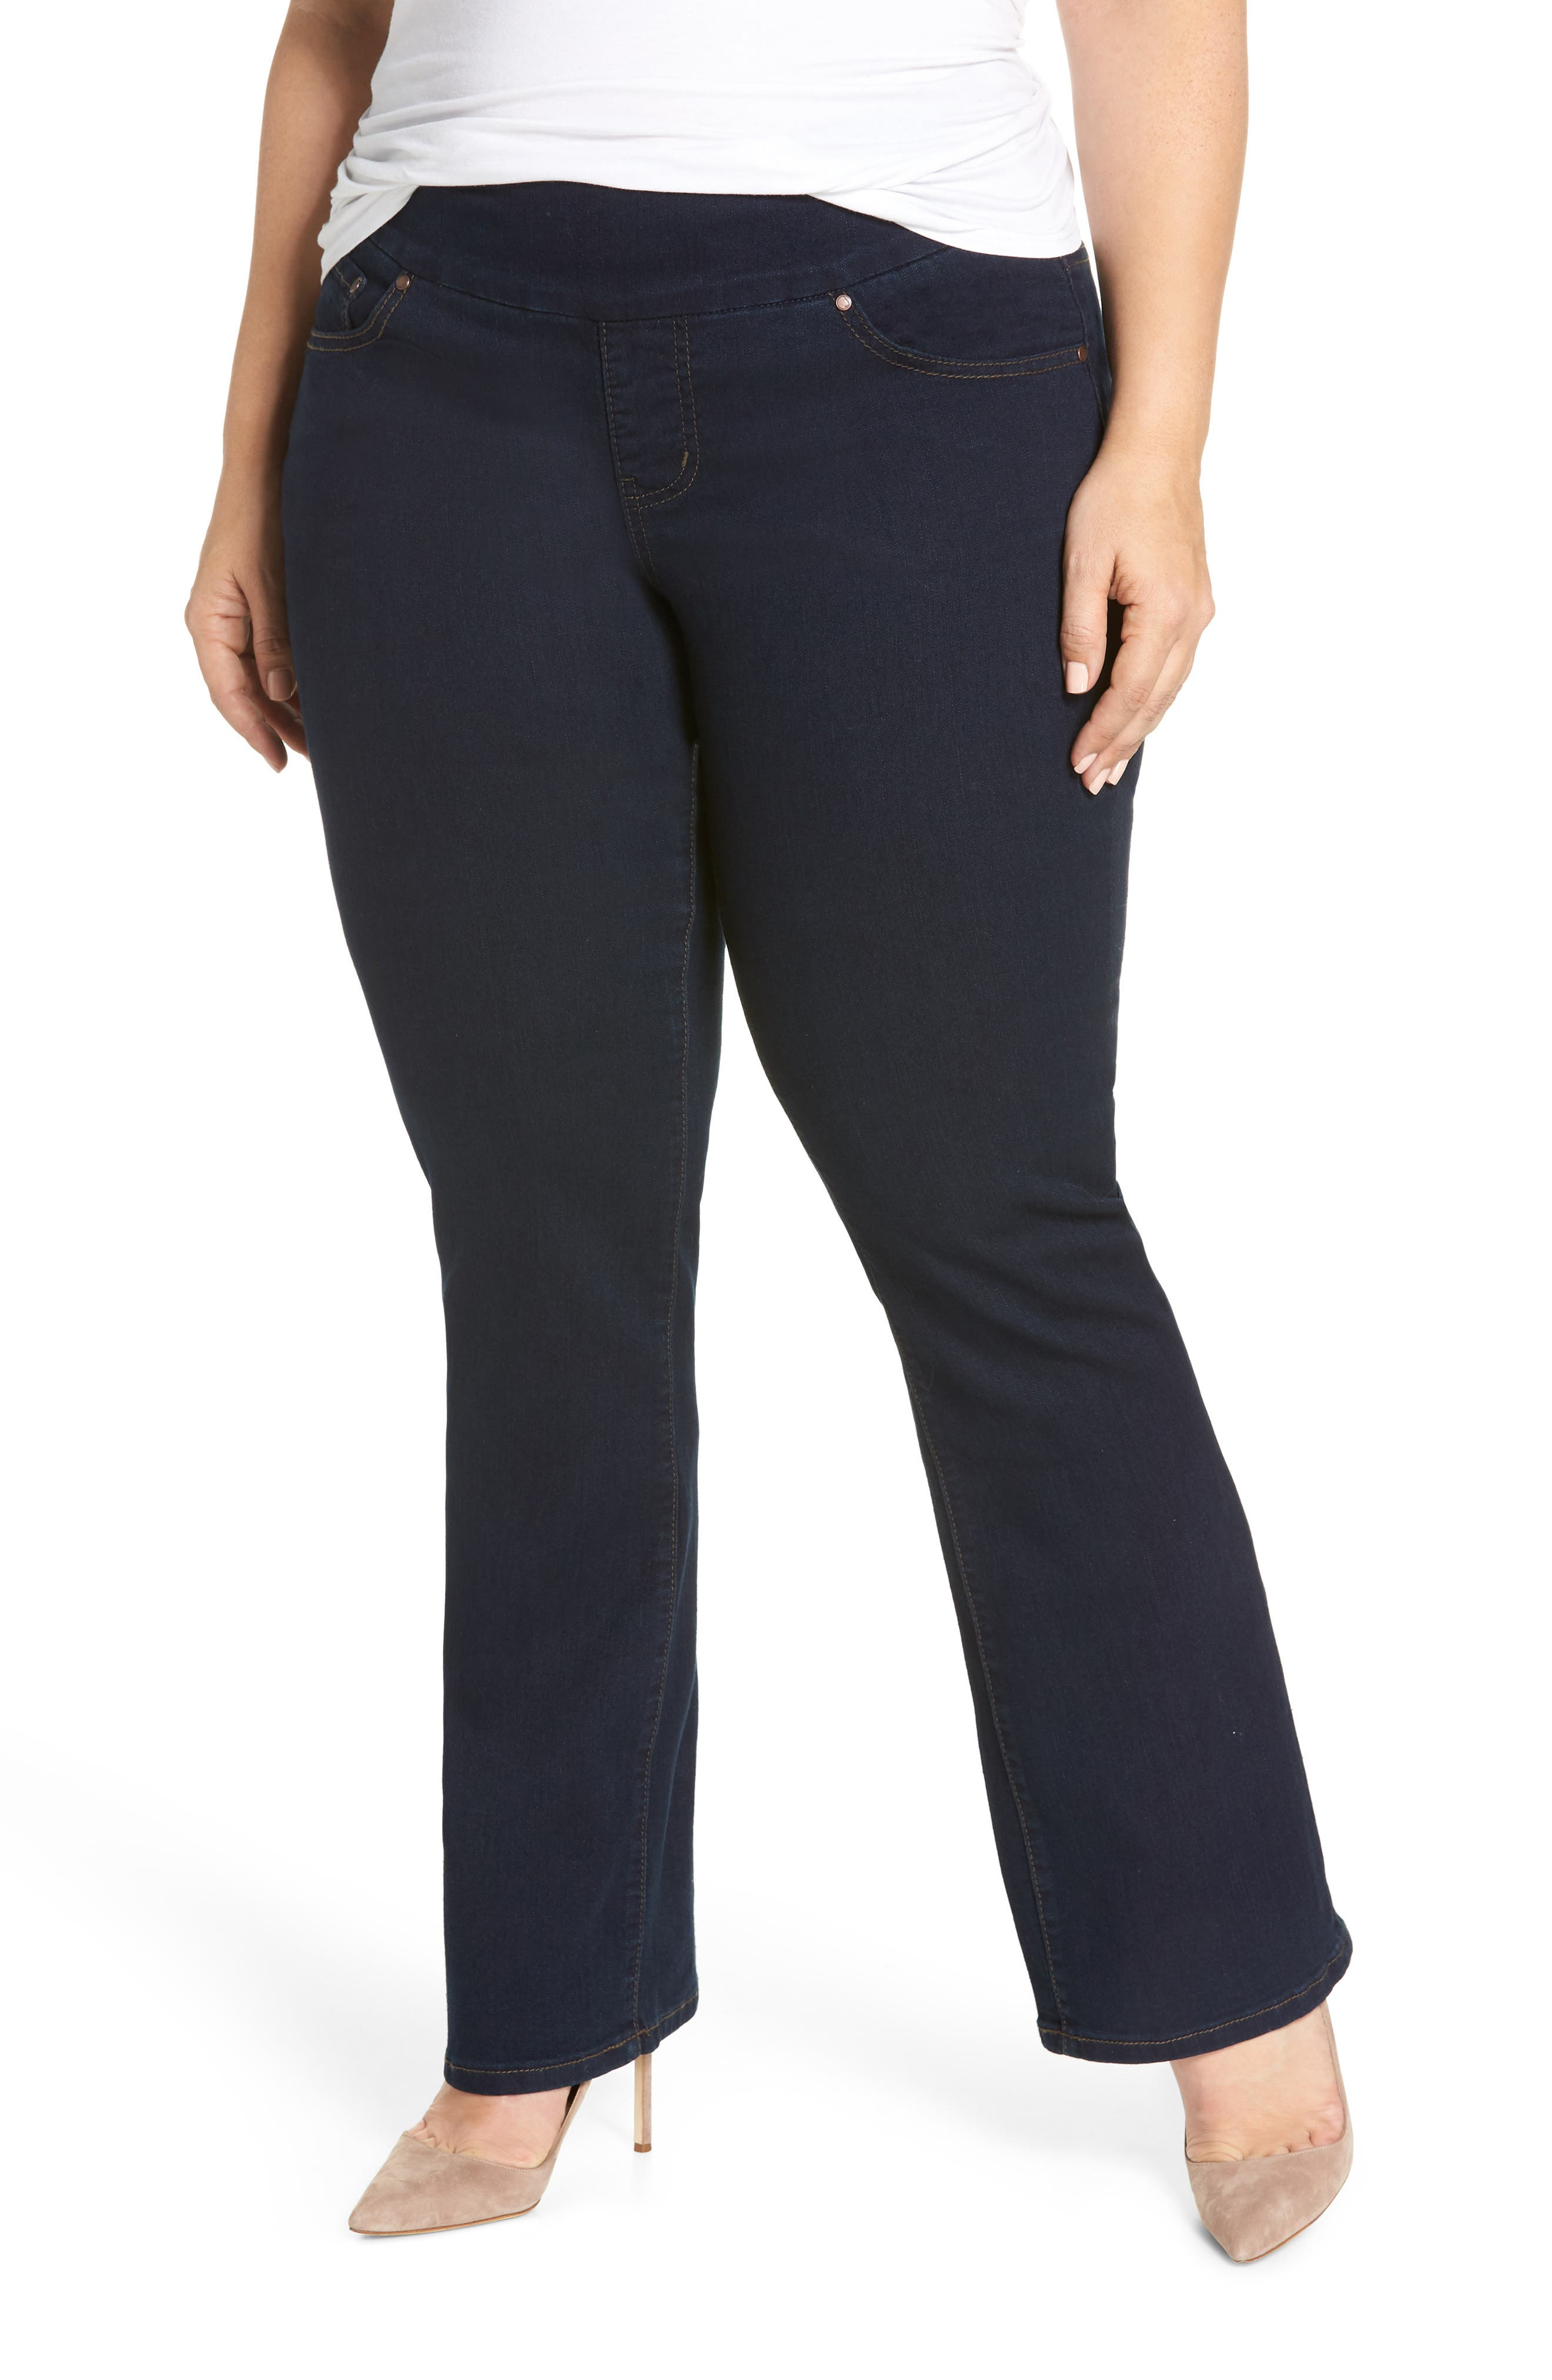 Peri Stretch Straight Leg Jeans,                         Main,                         color, Dark Indigo